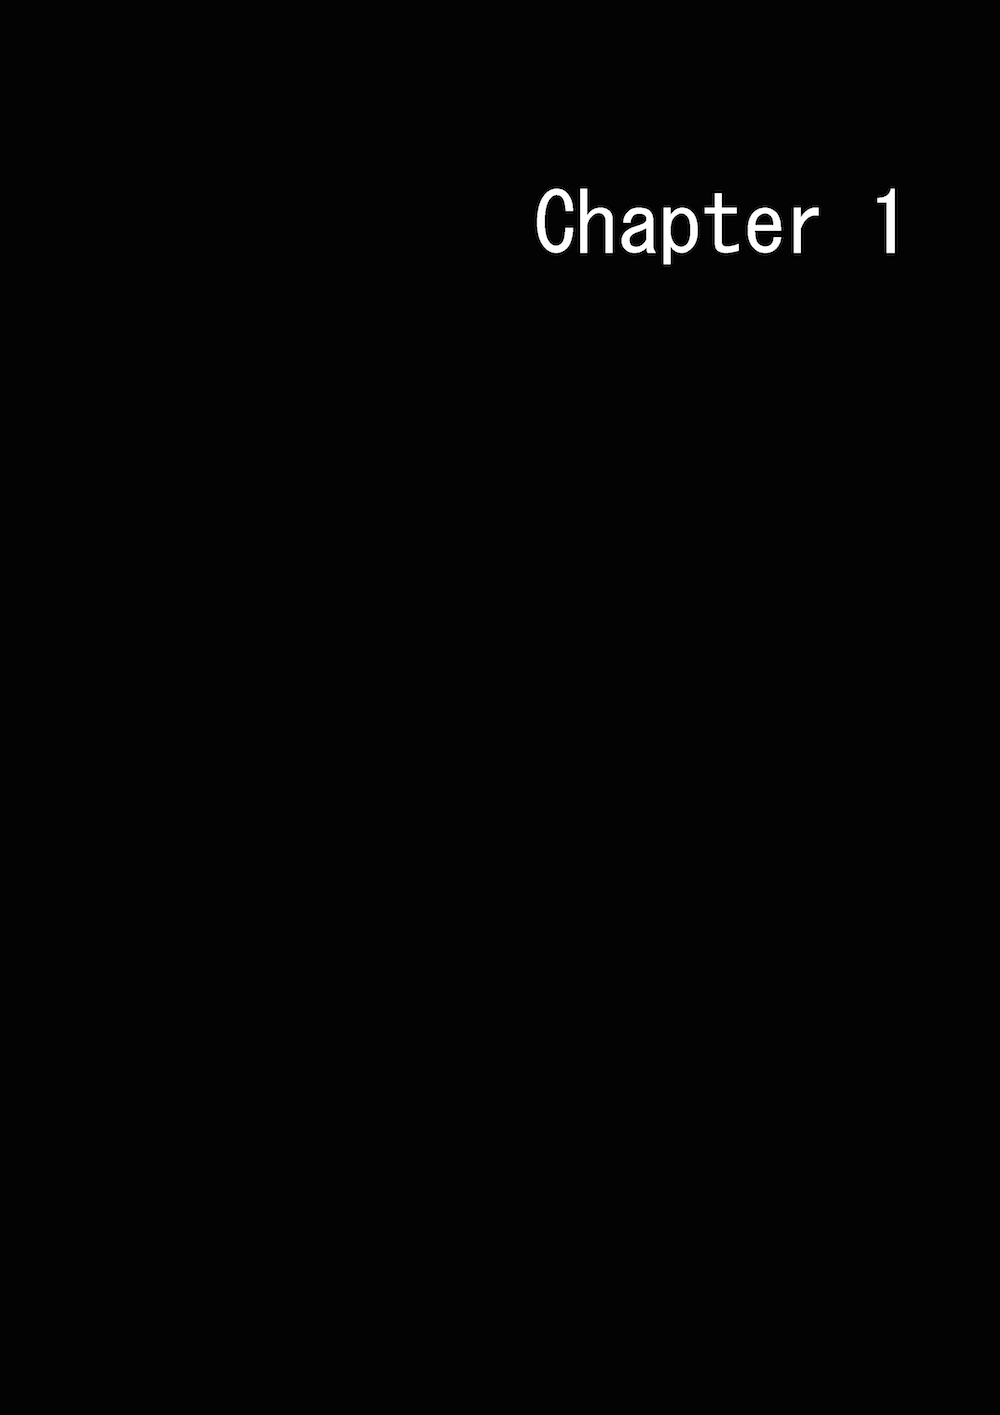 Chapter 1 page